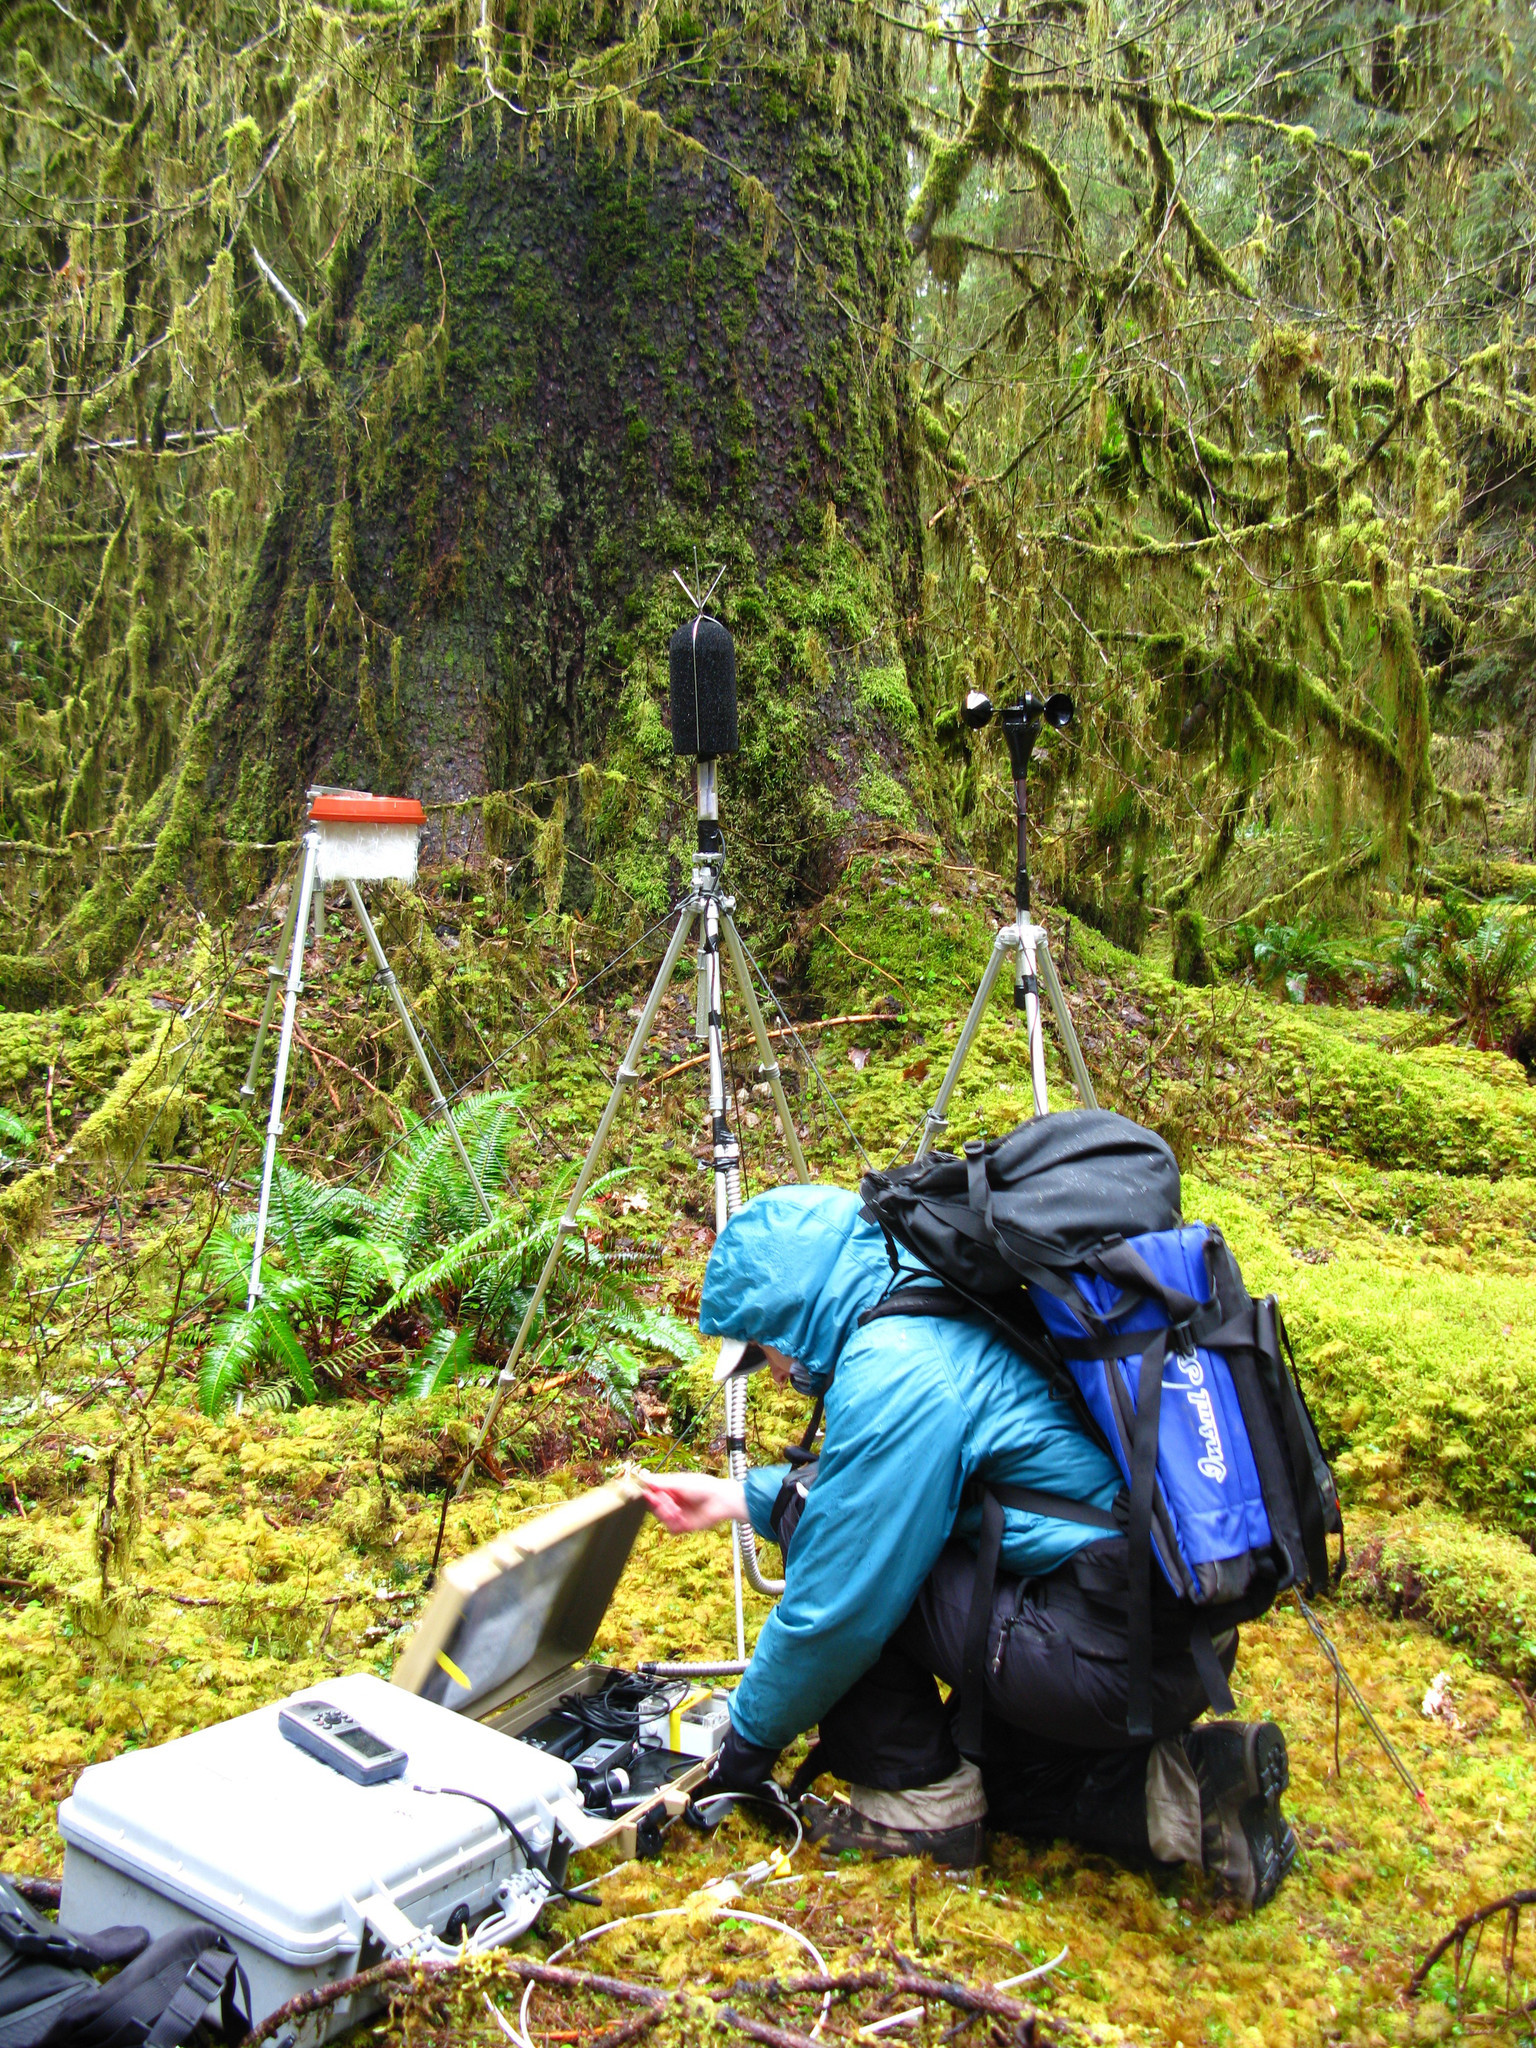 A National Park Service staff member sets up an acoustic recording station in the Hoh rainforest of Olympic National Park in Washington.